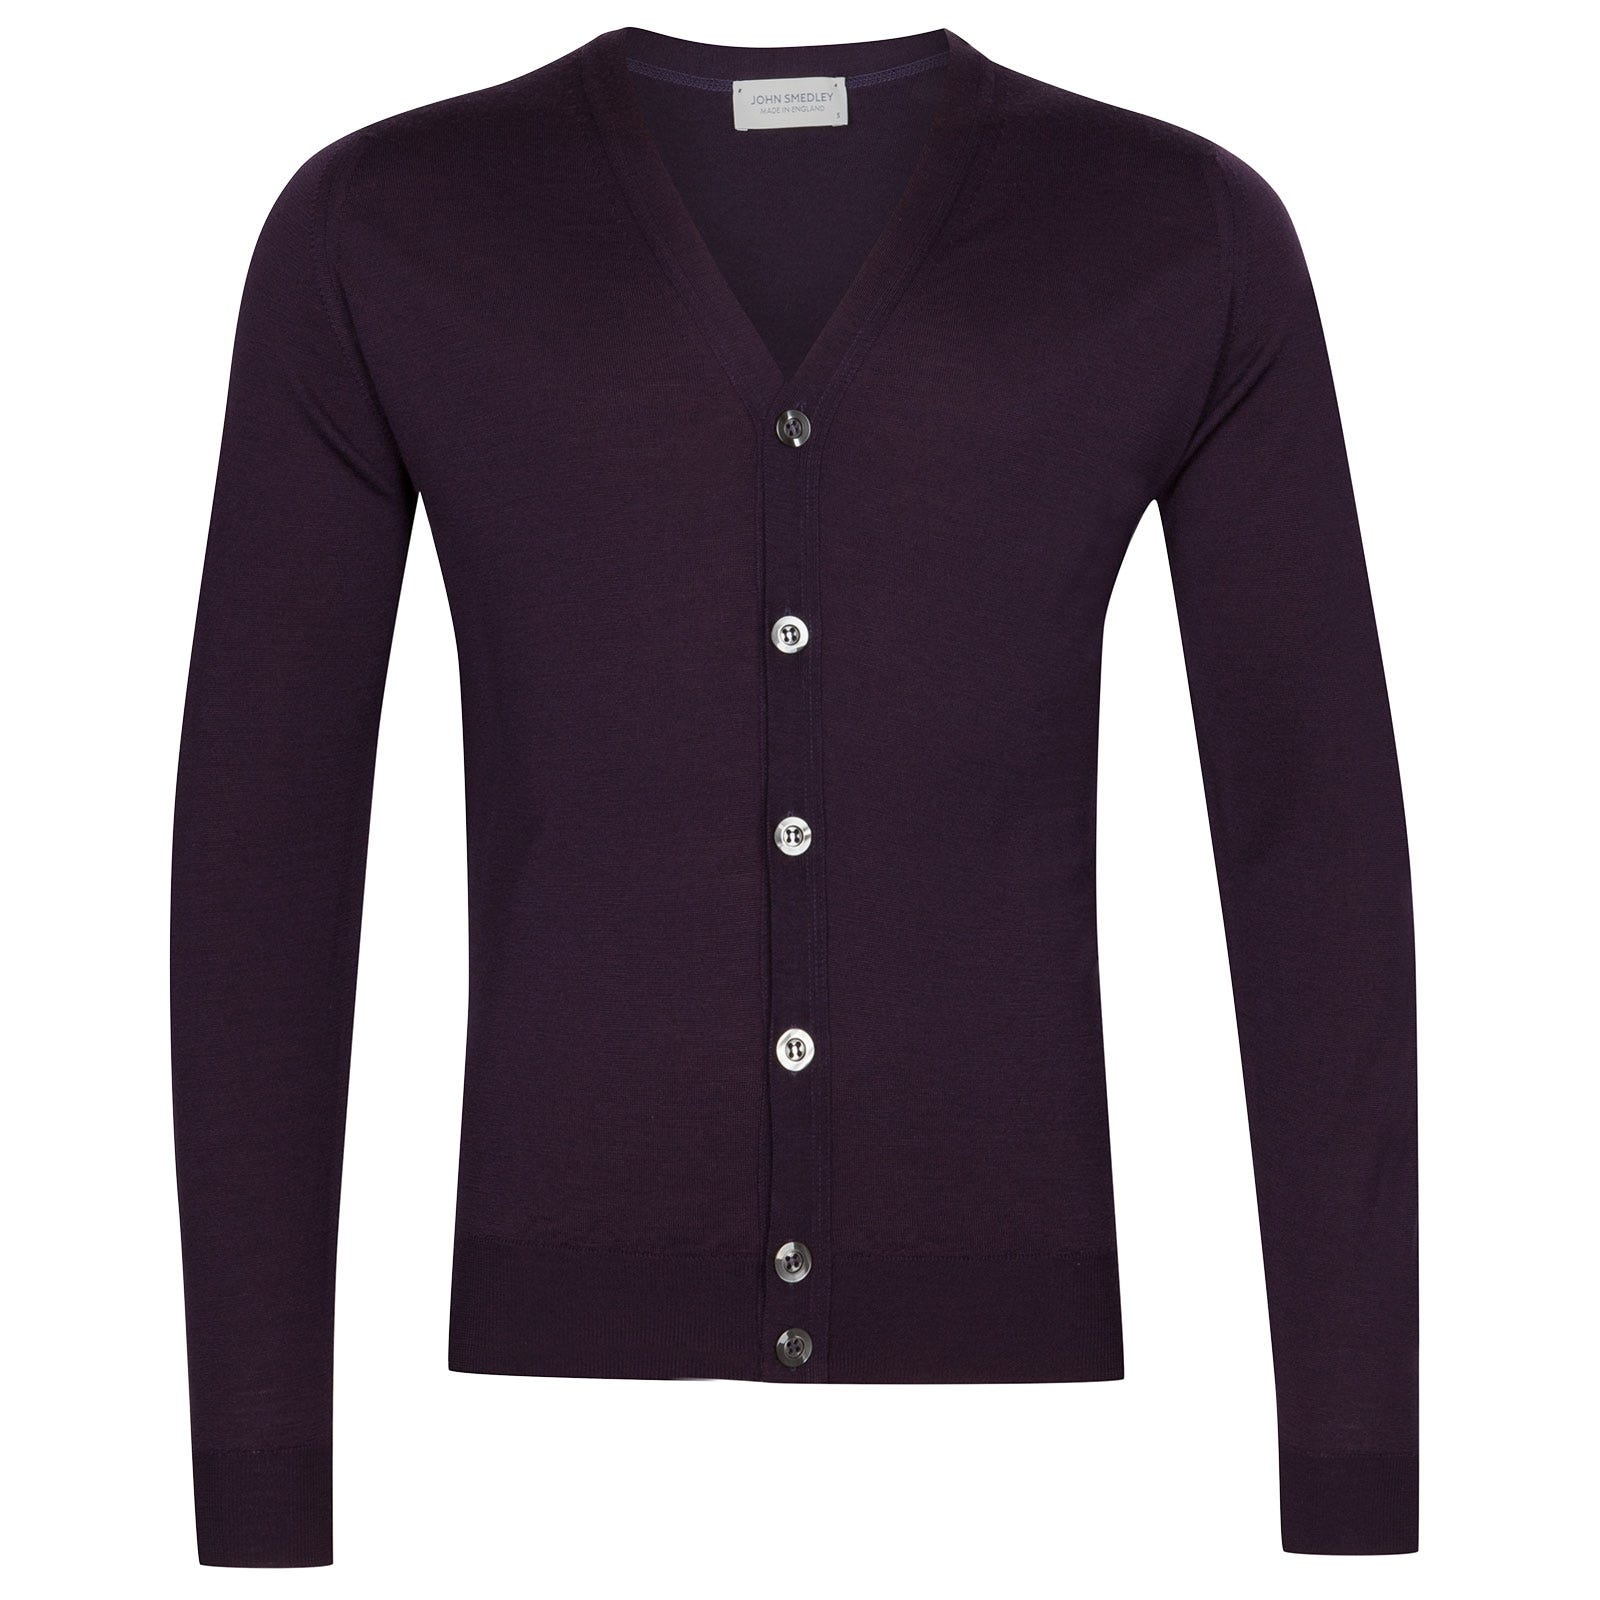 John Smedley Naples Merino Wool Cardigan in Mystic Purple-L